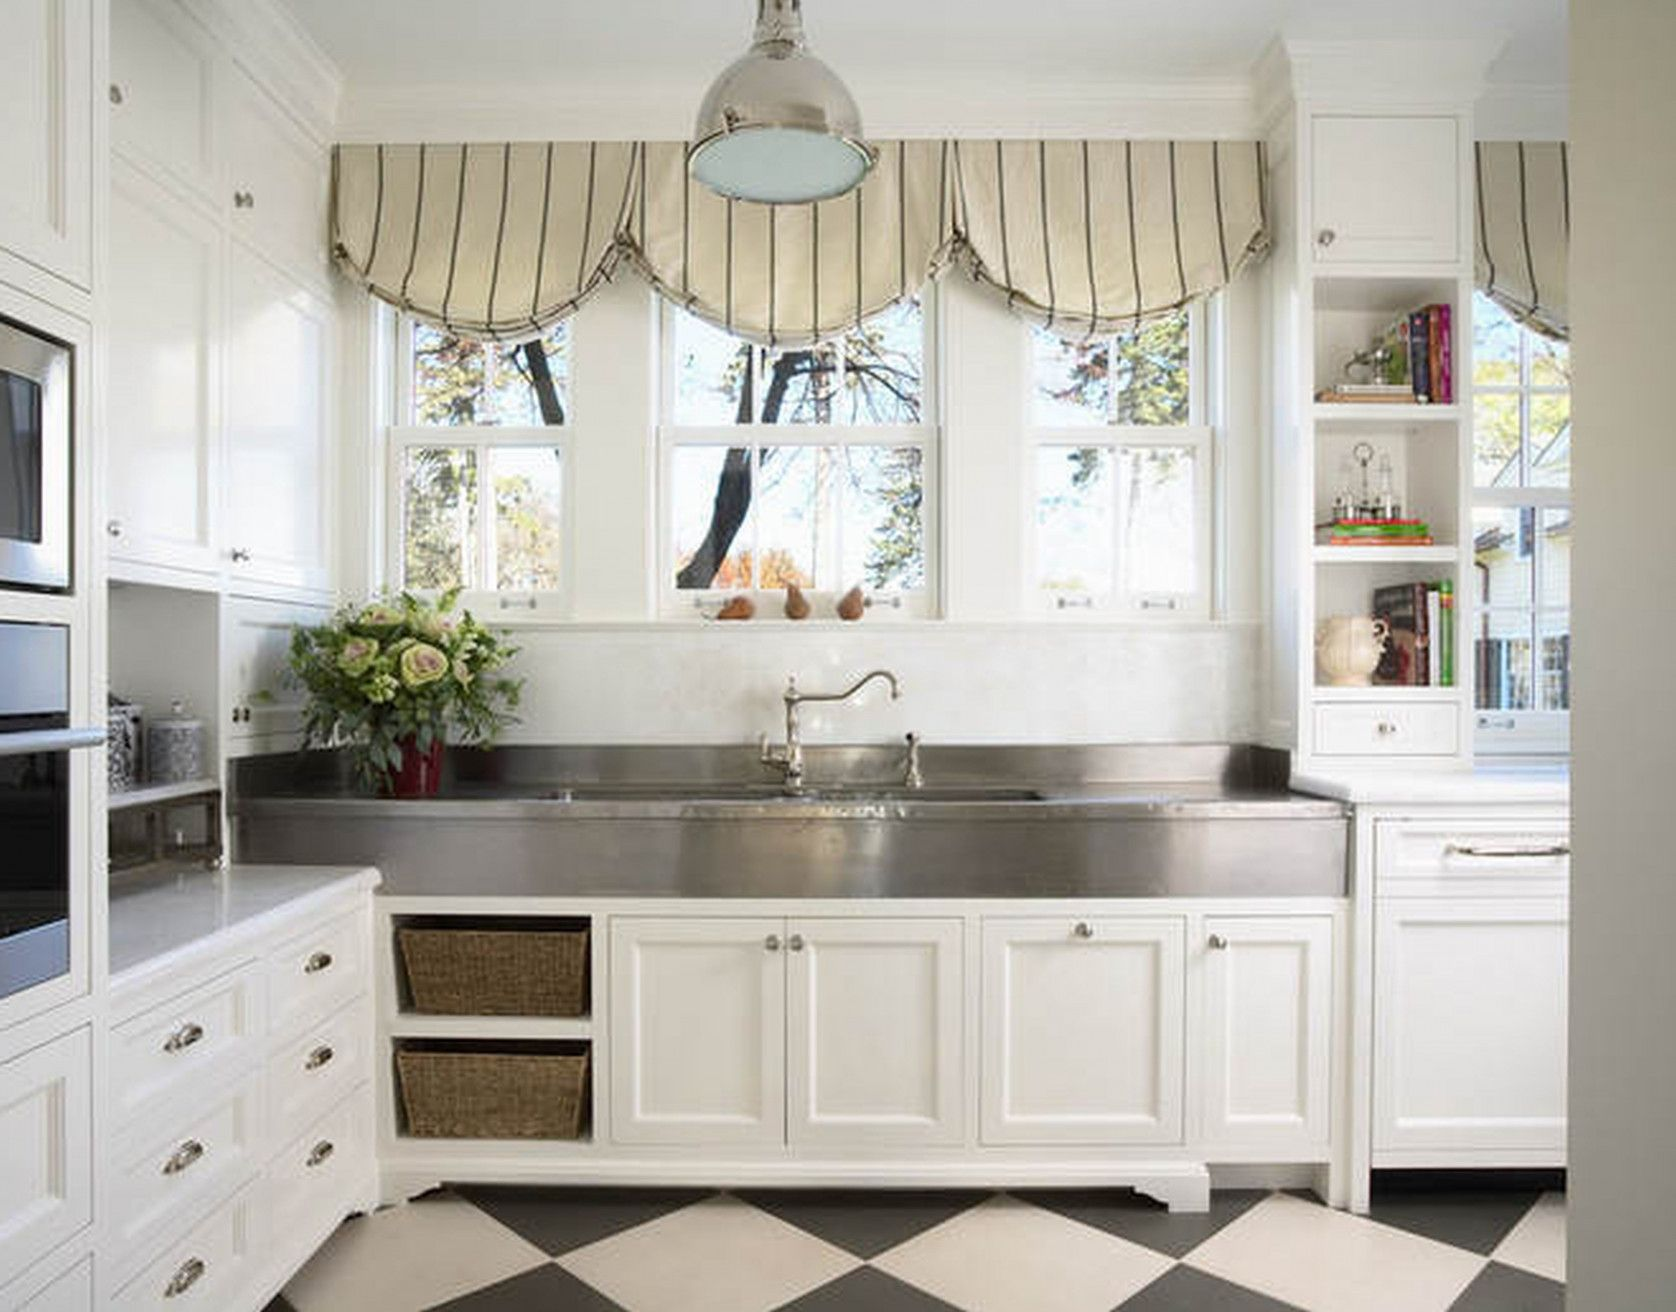 77 Tuscan Style Cabinet Hardware Best Kitchen Ideas Check More At Http